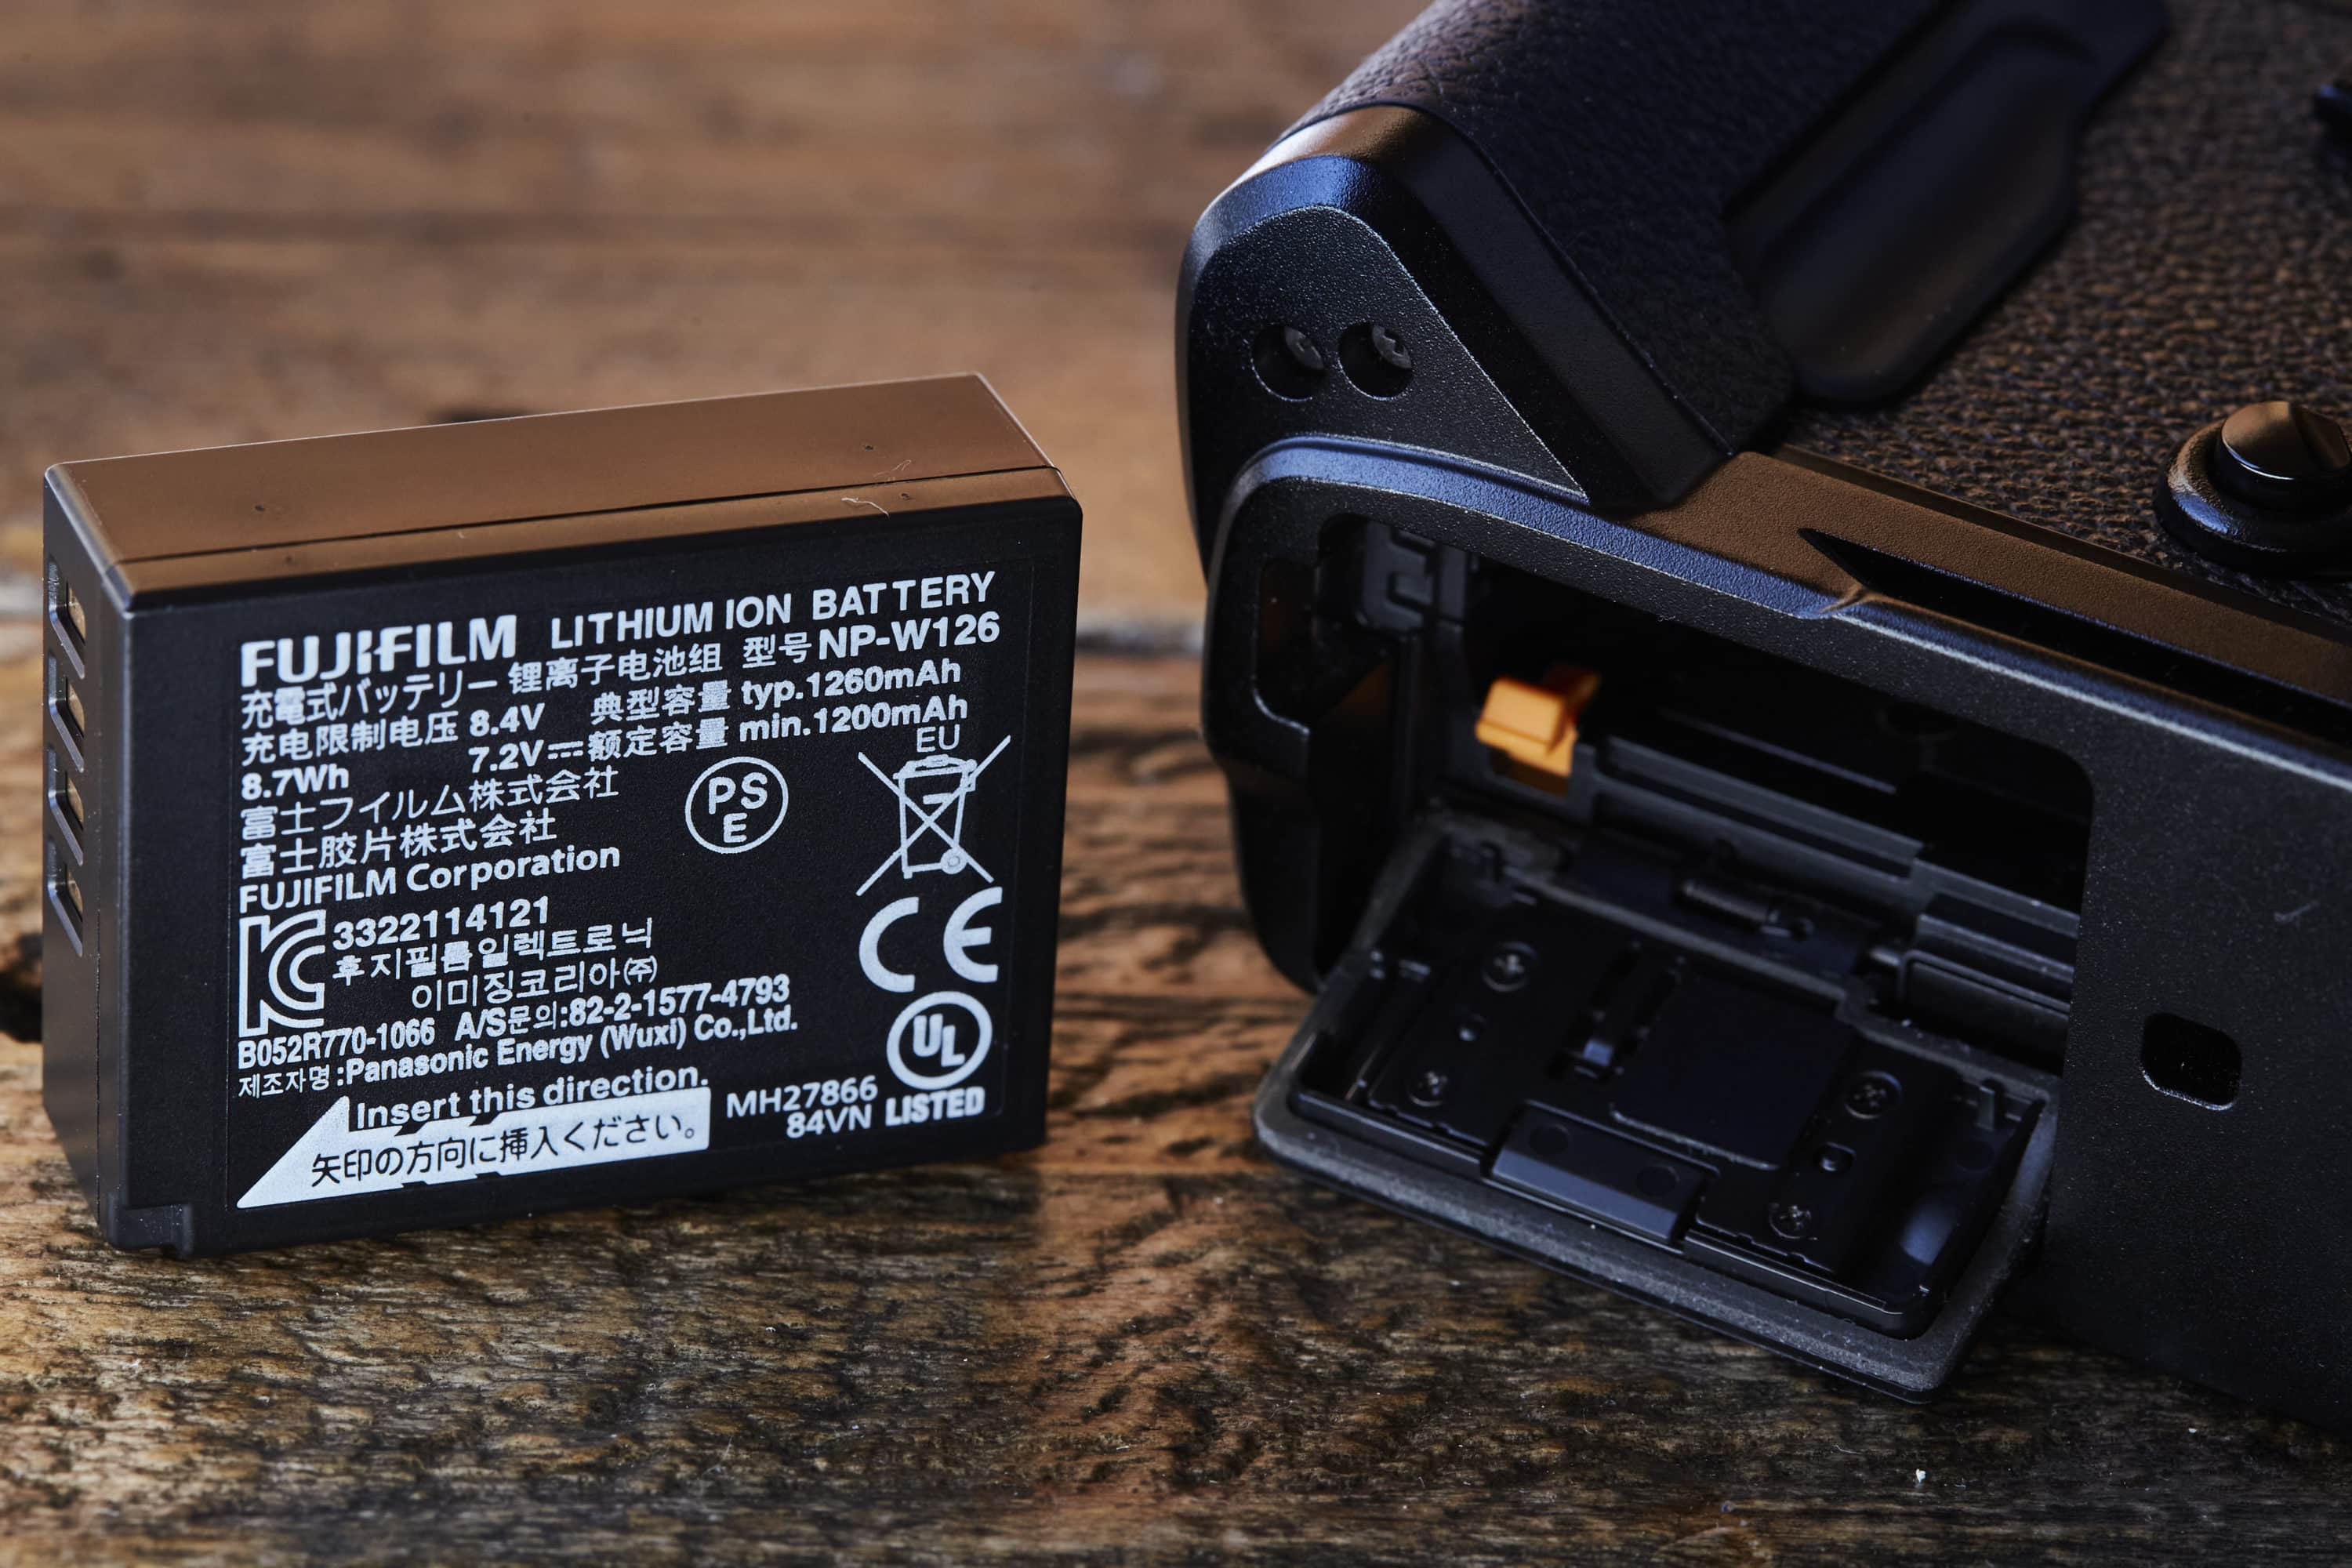 Fuji X-Pro2 camera and battery outside of body